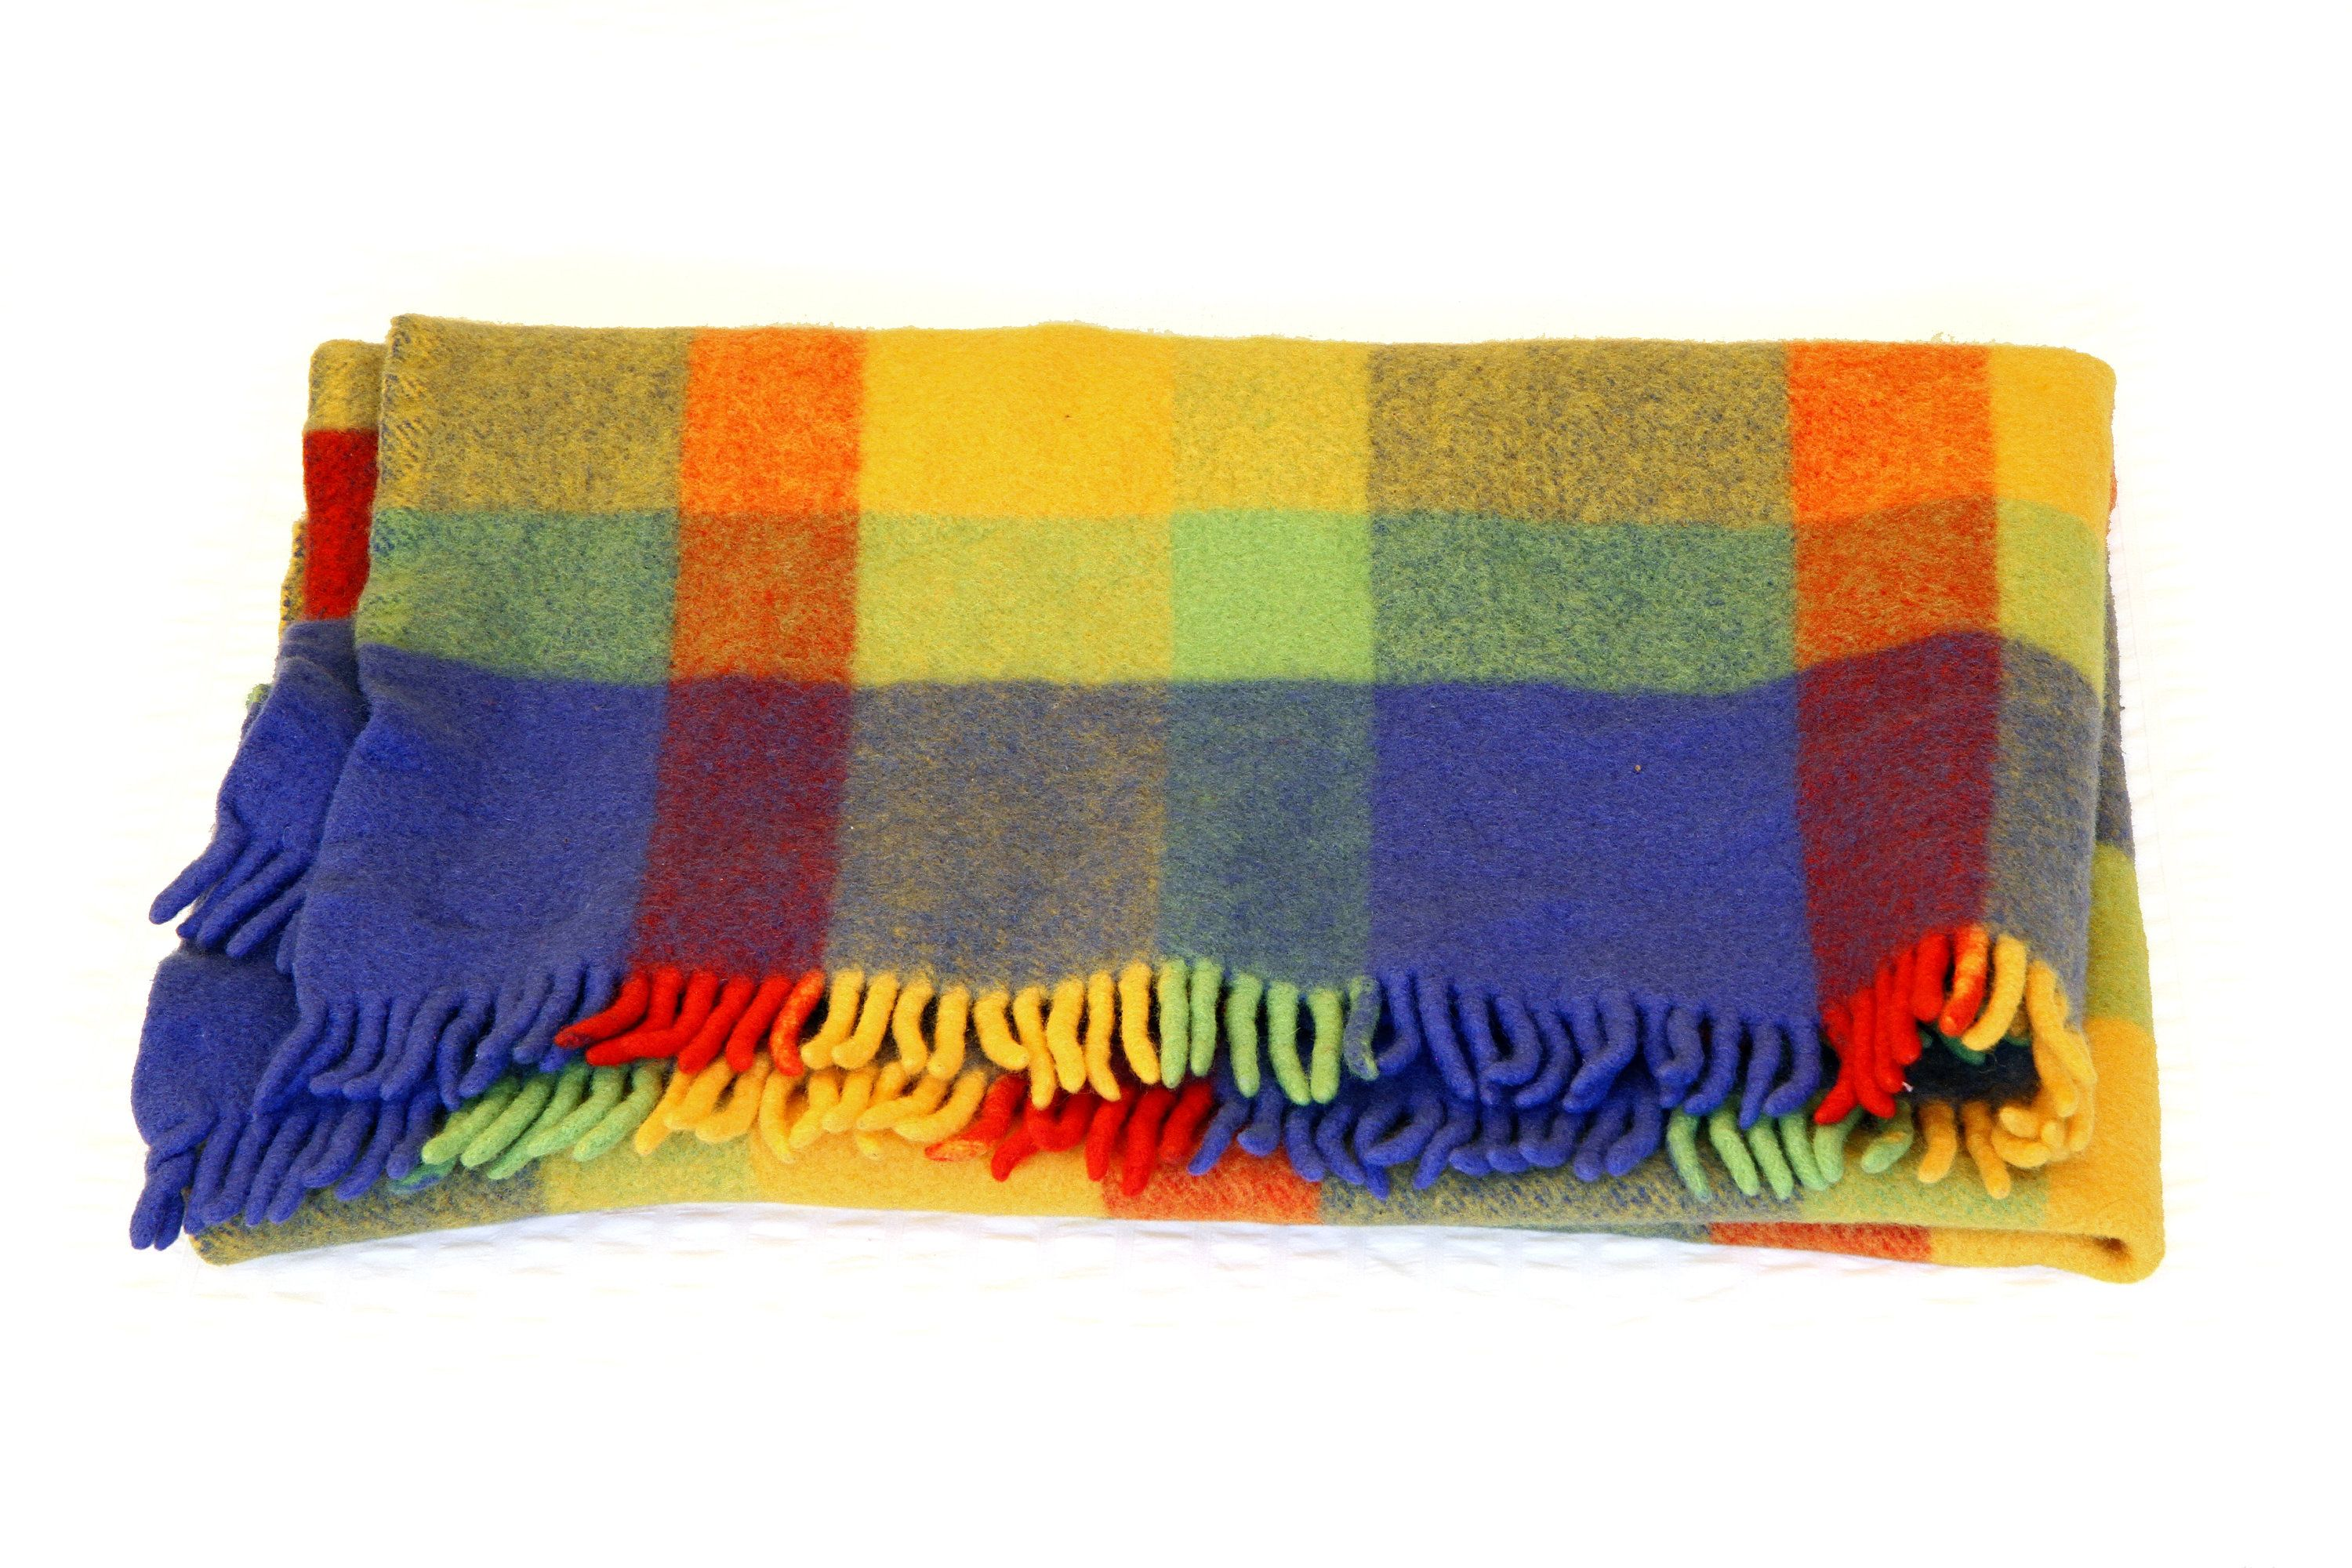 Colorful Throw Blankets Enchanting Wool Throw Blanket Plaid Wool Blanket Rainbow Colors Throw Blanket Design Ideas